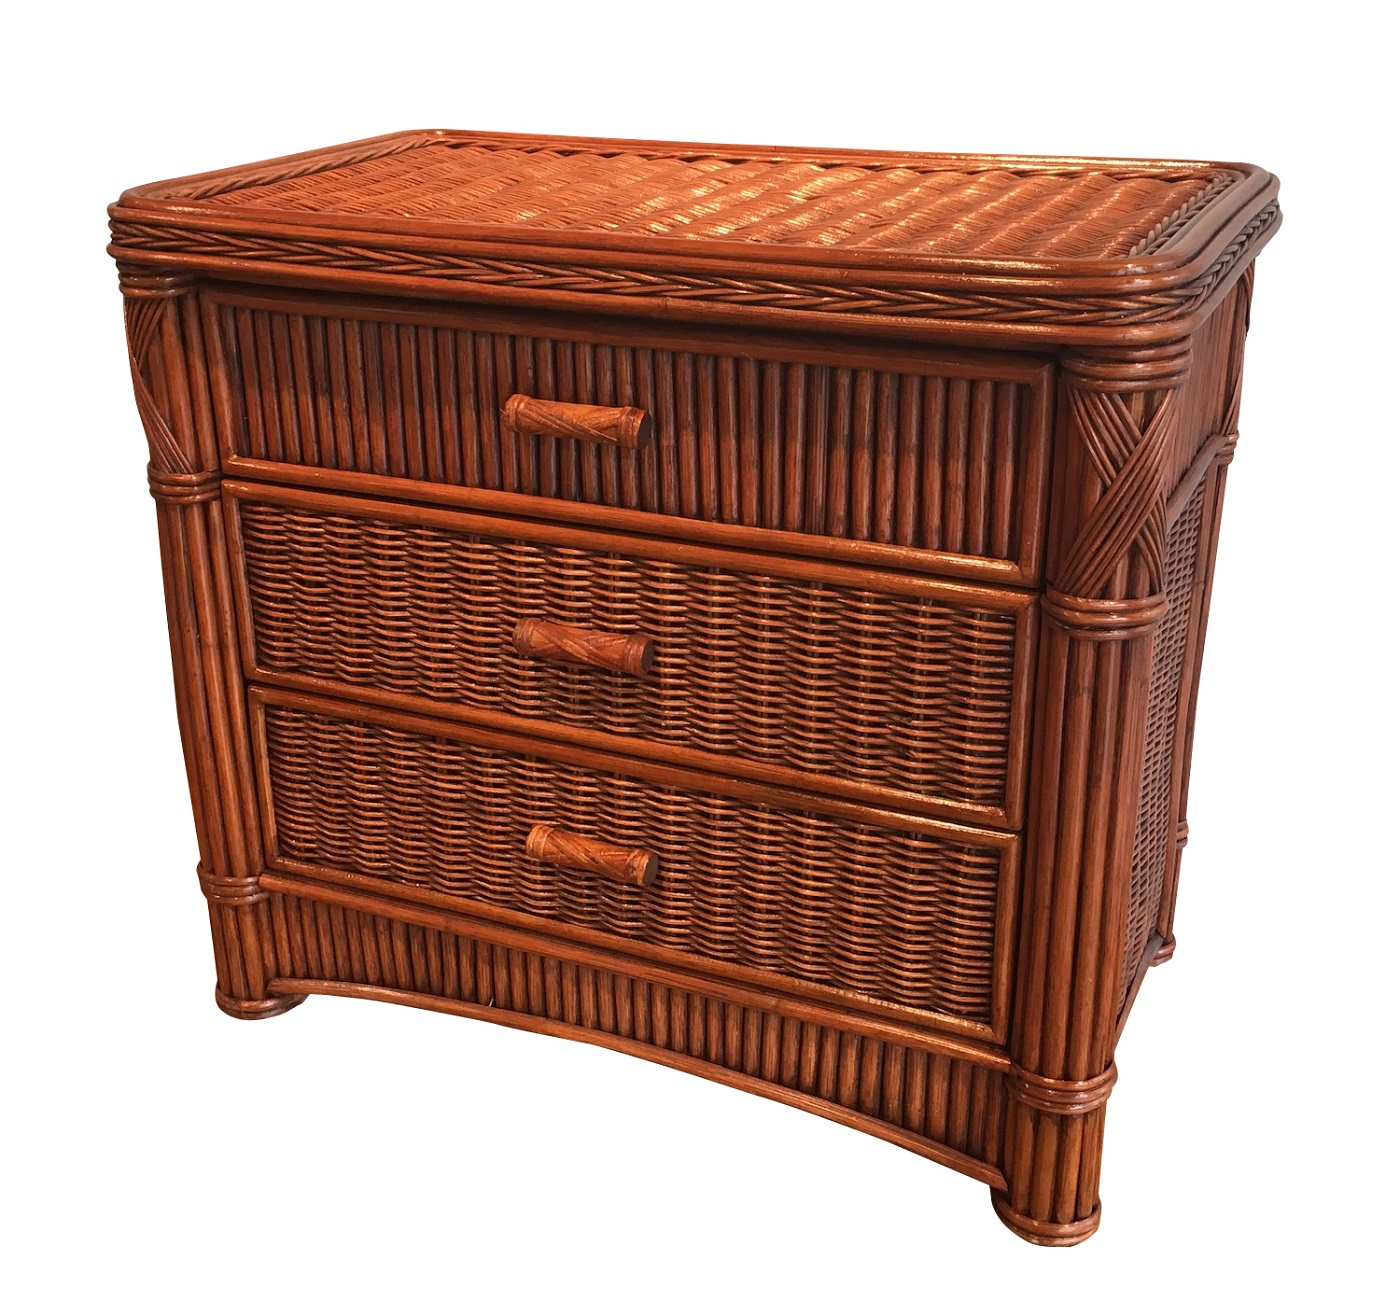 Rattan Chest 3 Drawer Barbados Wicker Paradise